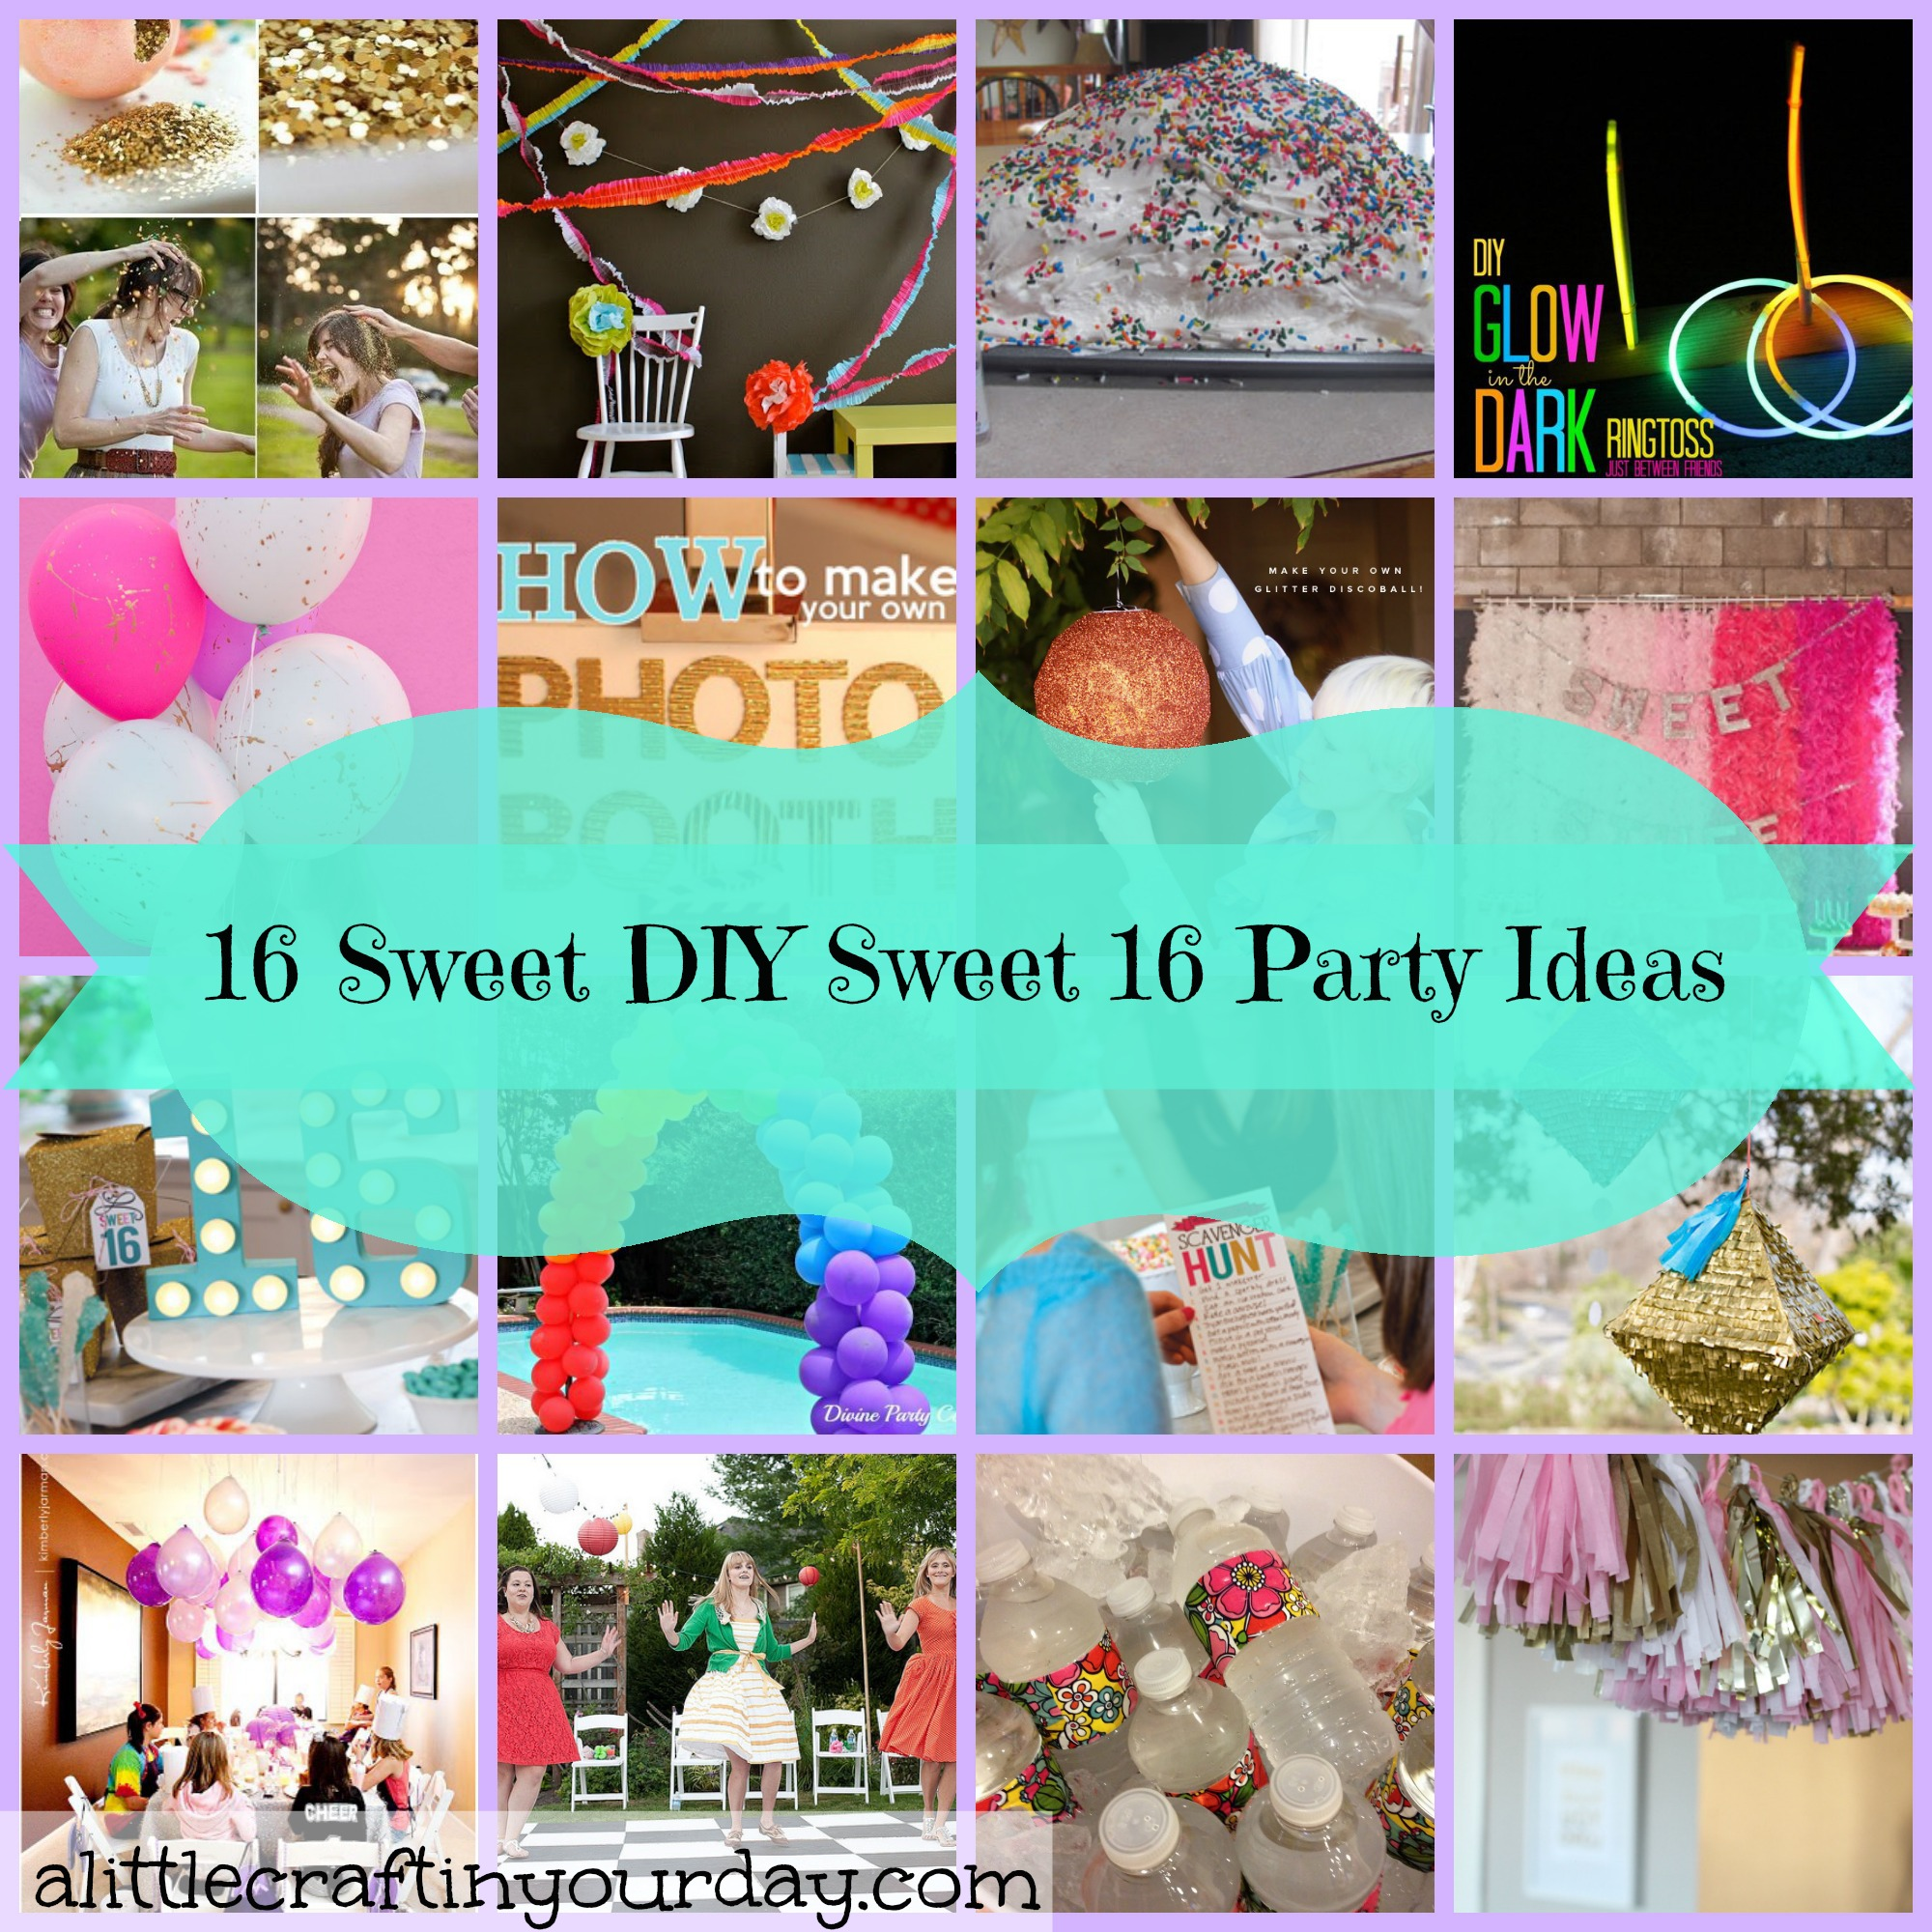 Diy Party 16 Sweet Diy Sweet 16 Party Ideas A Little Craft In Your Day